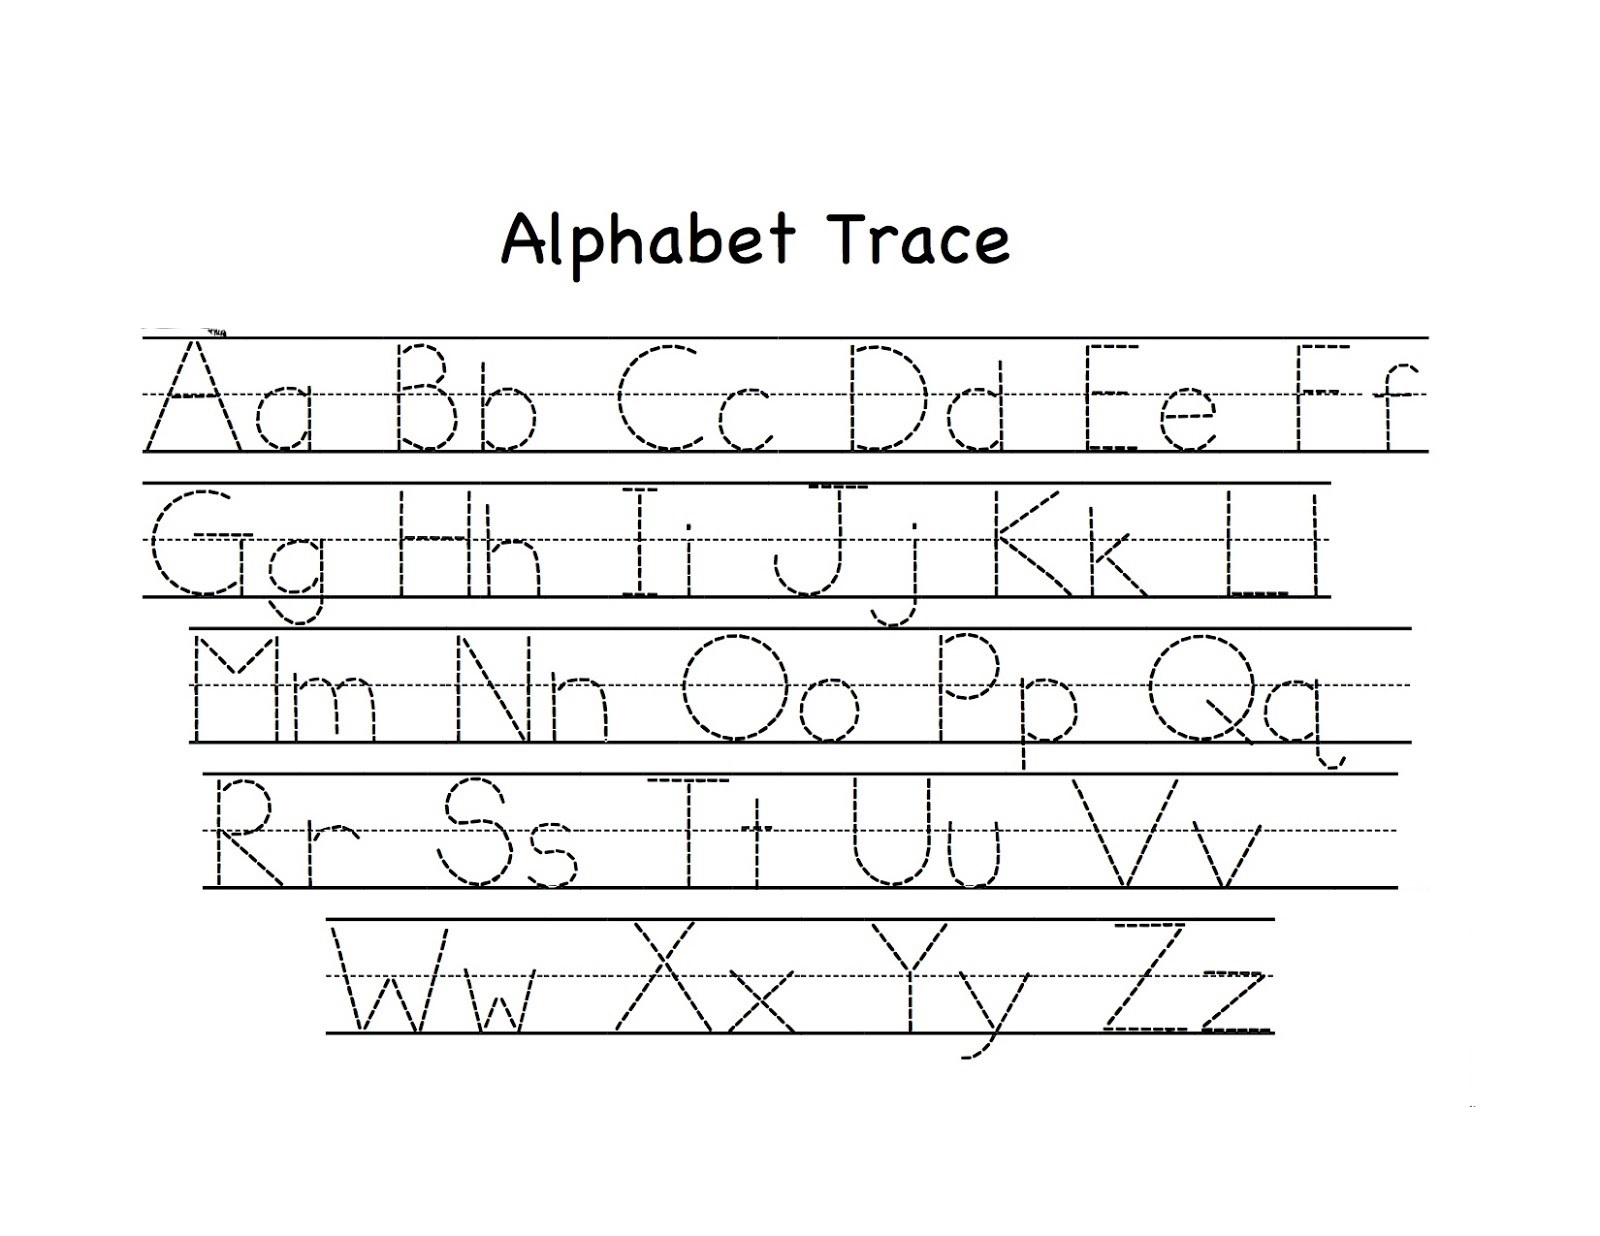 58 Staggering Alphabet Tracing Worksheets Image Inspirations regarding Pre-K Alphabet Tracing Pages